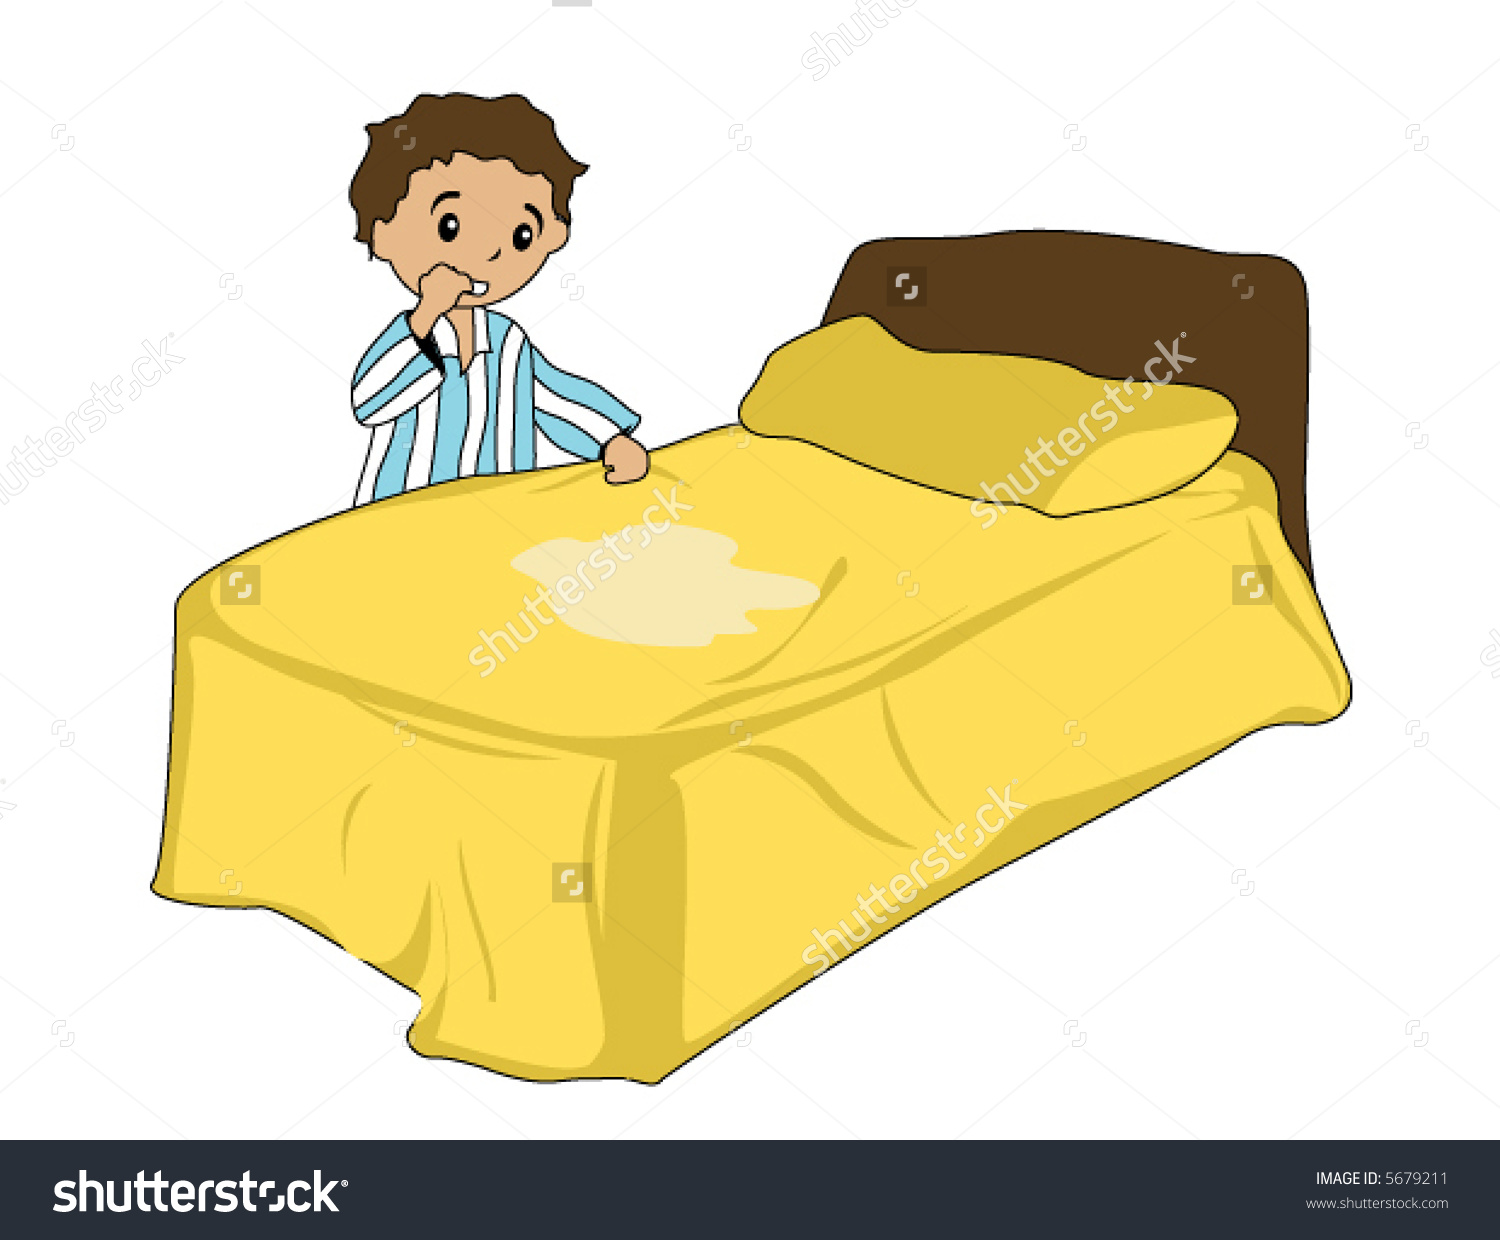 Bed Wetting Vector Stock Vector 5679211.